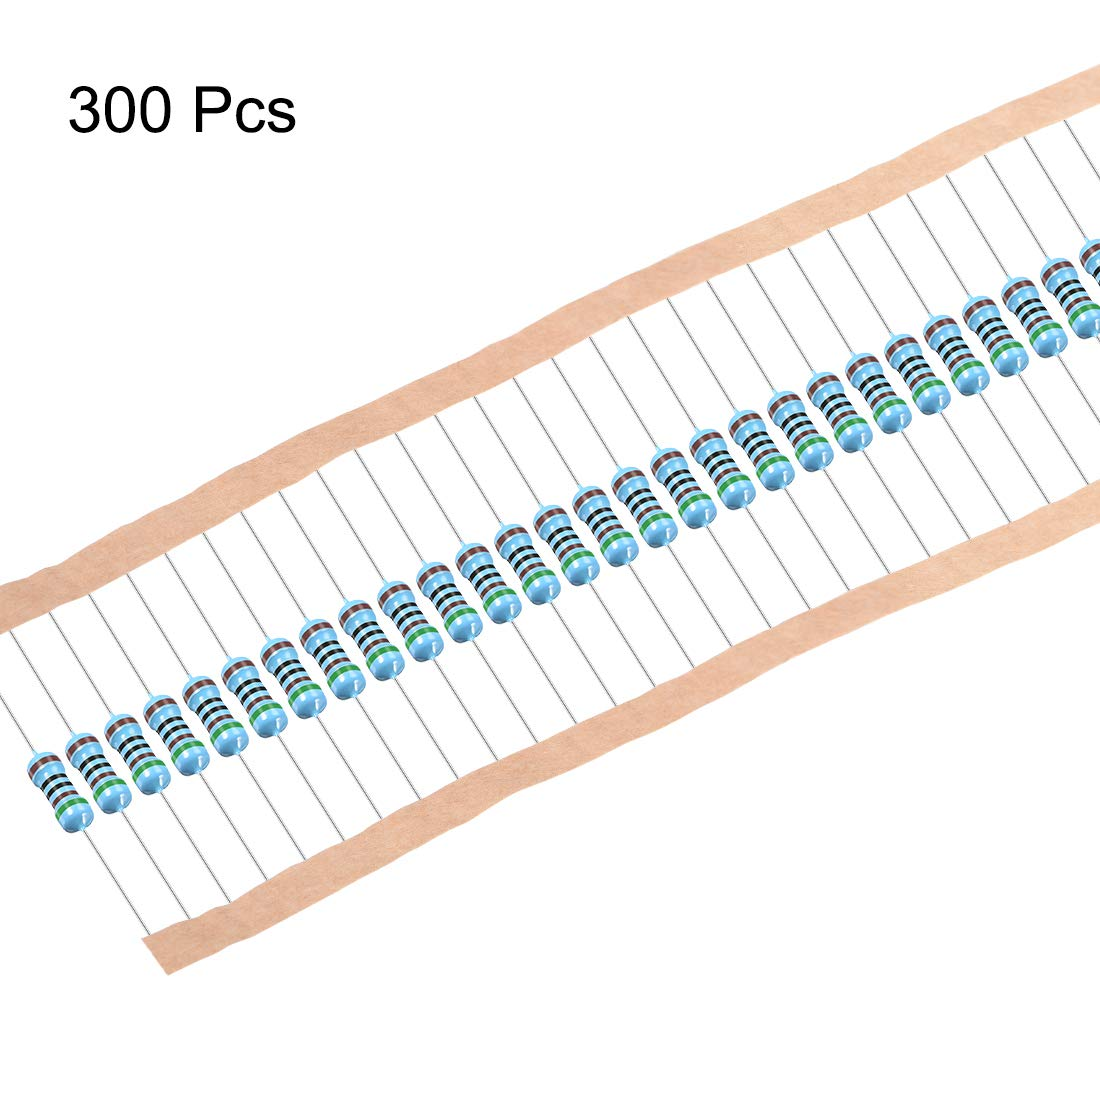 uxcell 300Pcs 120 Ohm Resistor Axial Lead 1//4W 1/% Tolerance Metal Film Resistors 5 Bands for DIY Electronic Projects and Experiments